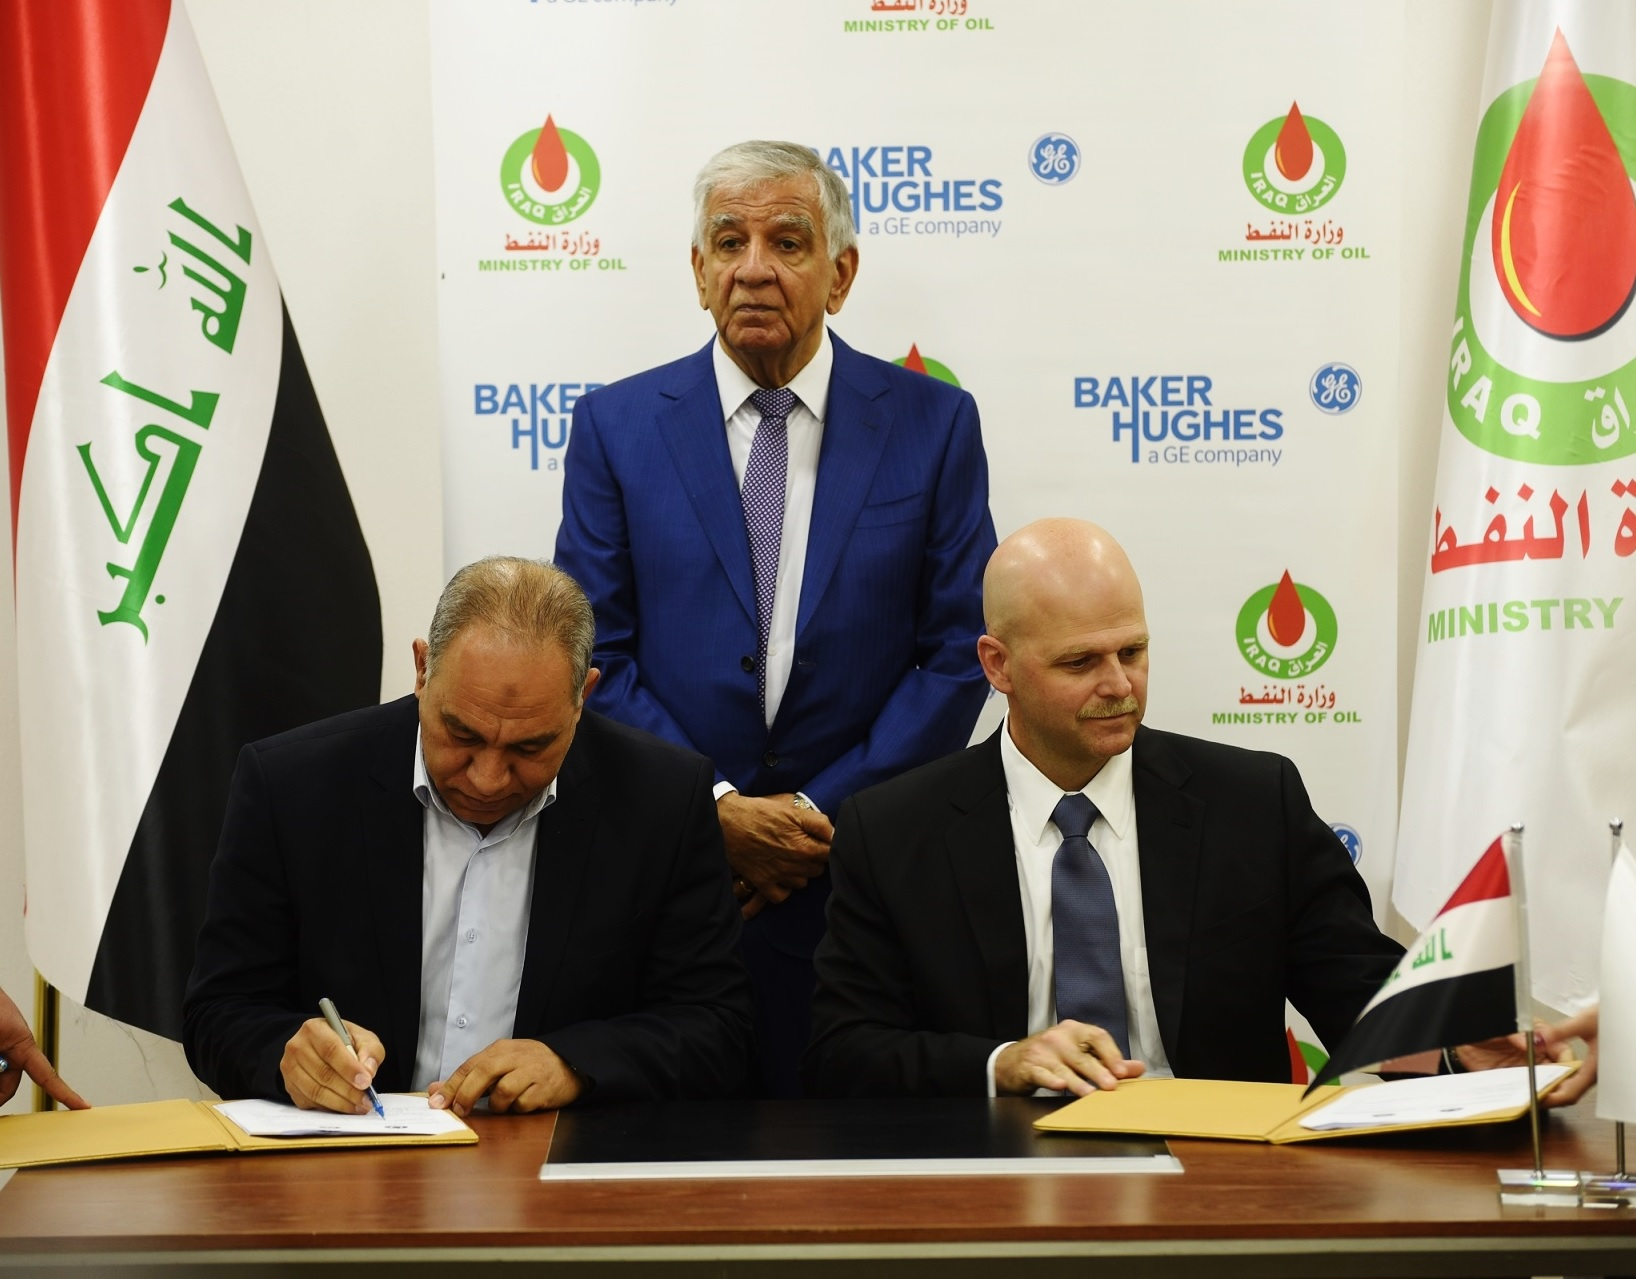 Iraq Ministry of Oil and Baker Hughes, a GE Company Sign a Contract for Modular Natural Gas Liquids Plant Solution for Flare Gas Recovery